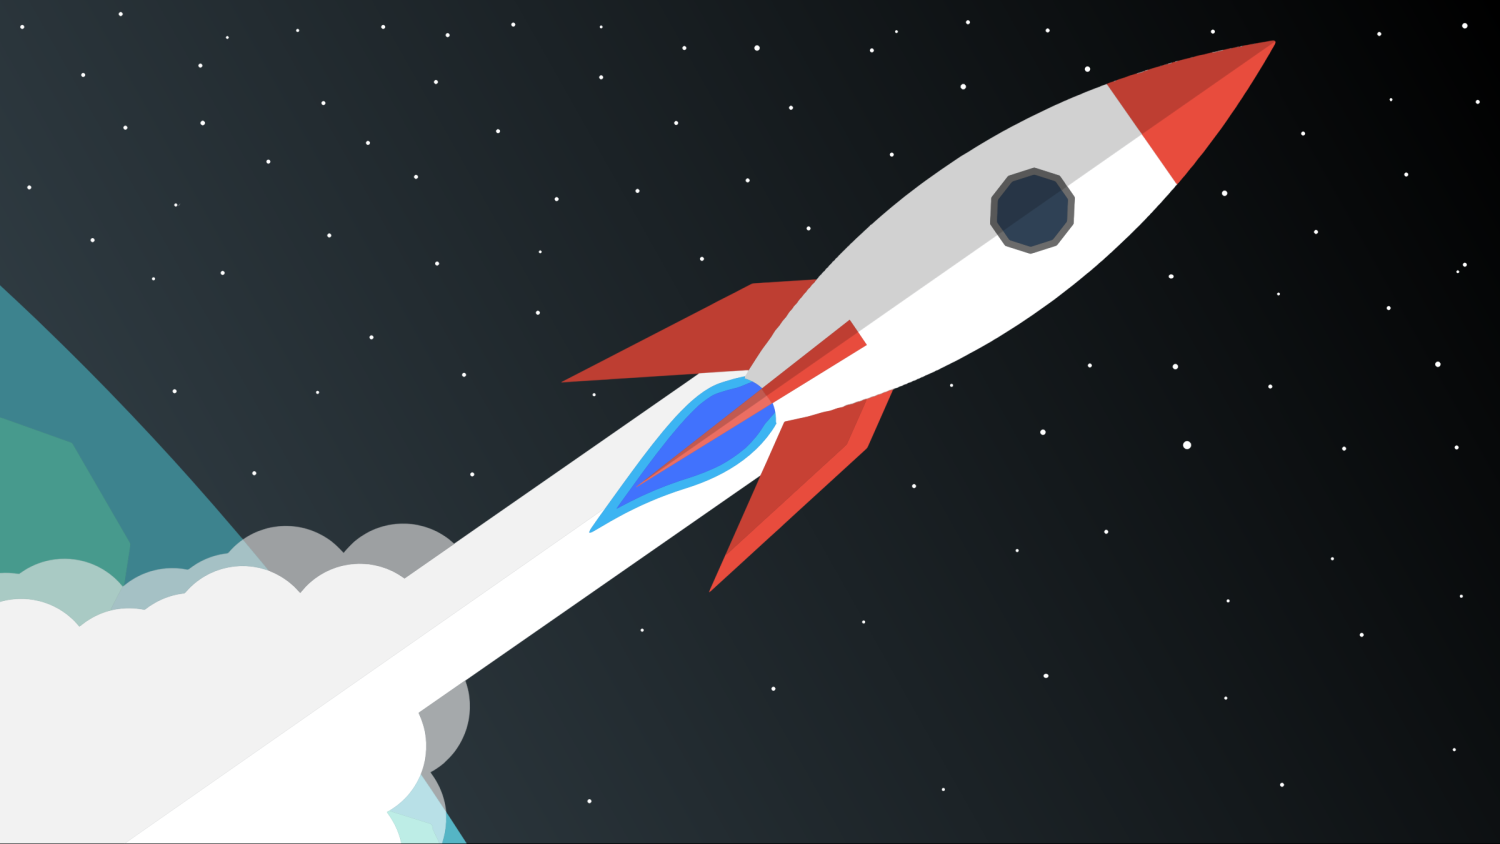 rocket_blasting_off_into_space_vector_clipart.png